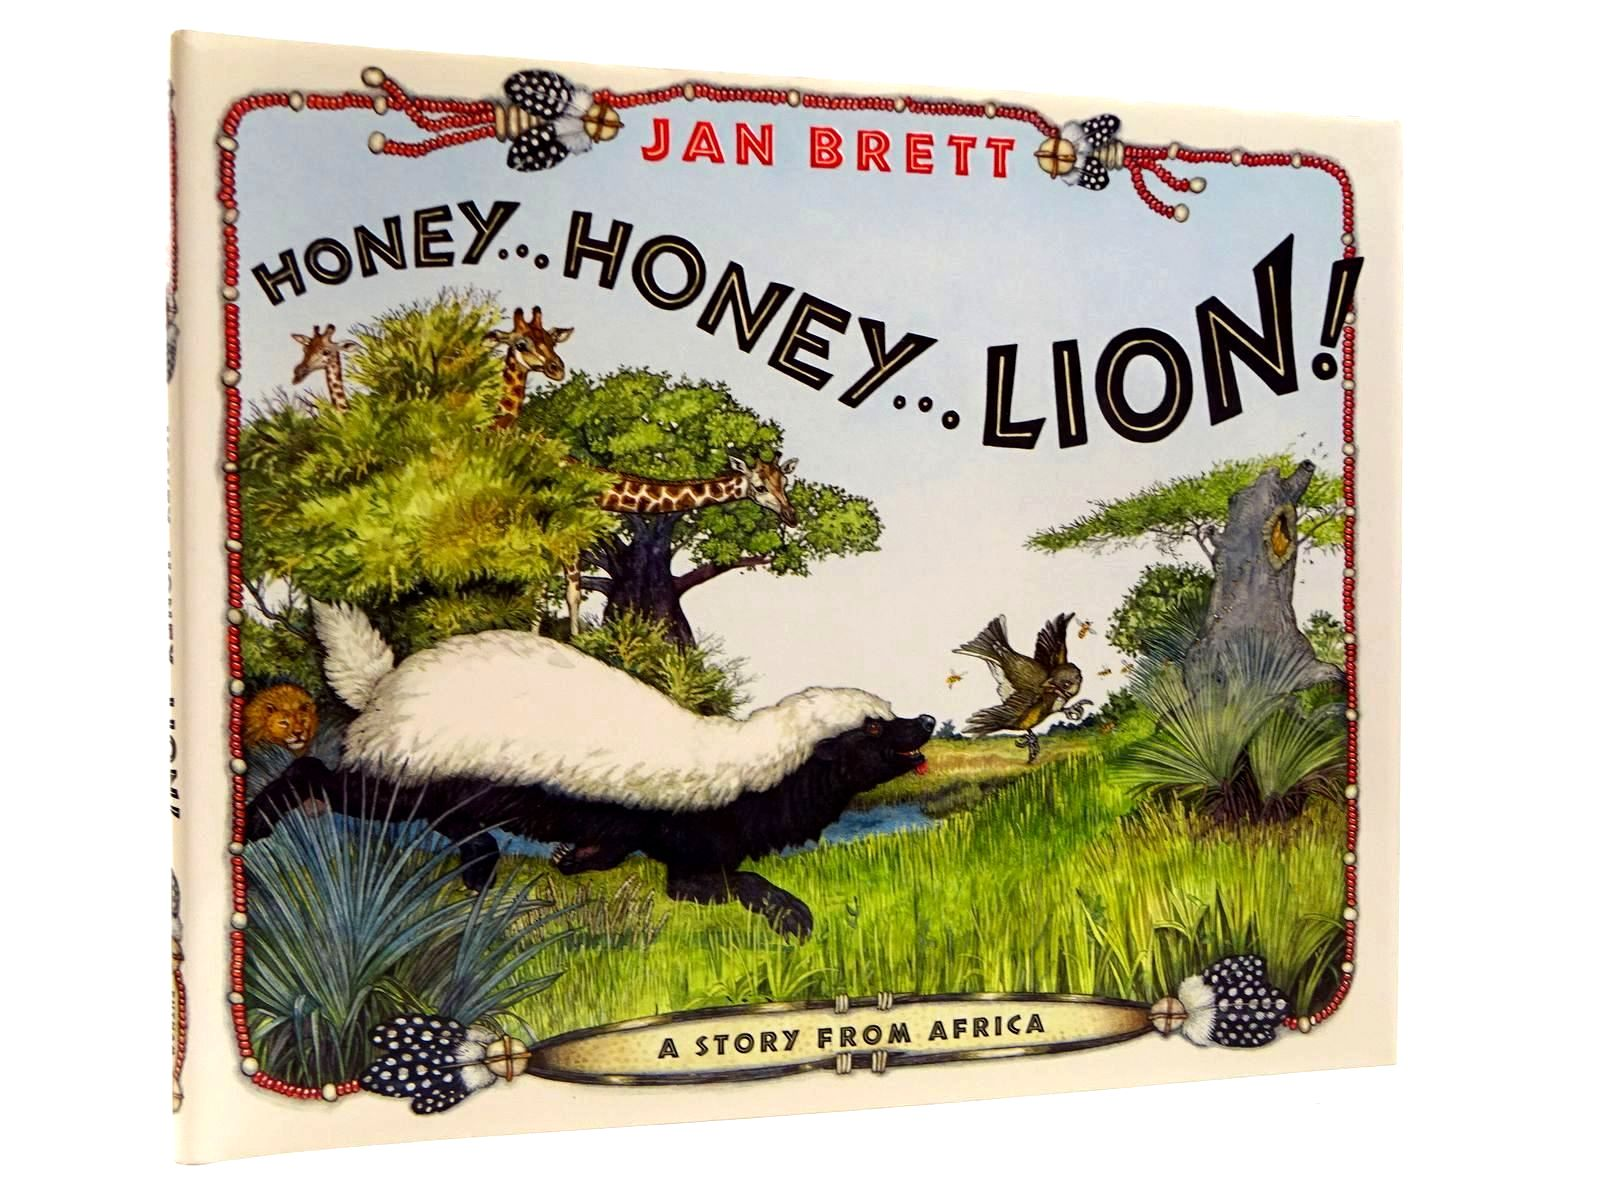 Photo of HONEY.. HONEY...LION! written by Brett, Jan illustrated by Brett, Jan published by G.P. Putnam's Sons (STOCK CODE: 2130704)  for sale by Stella & Rose's Books